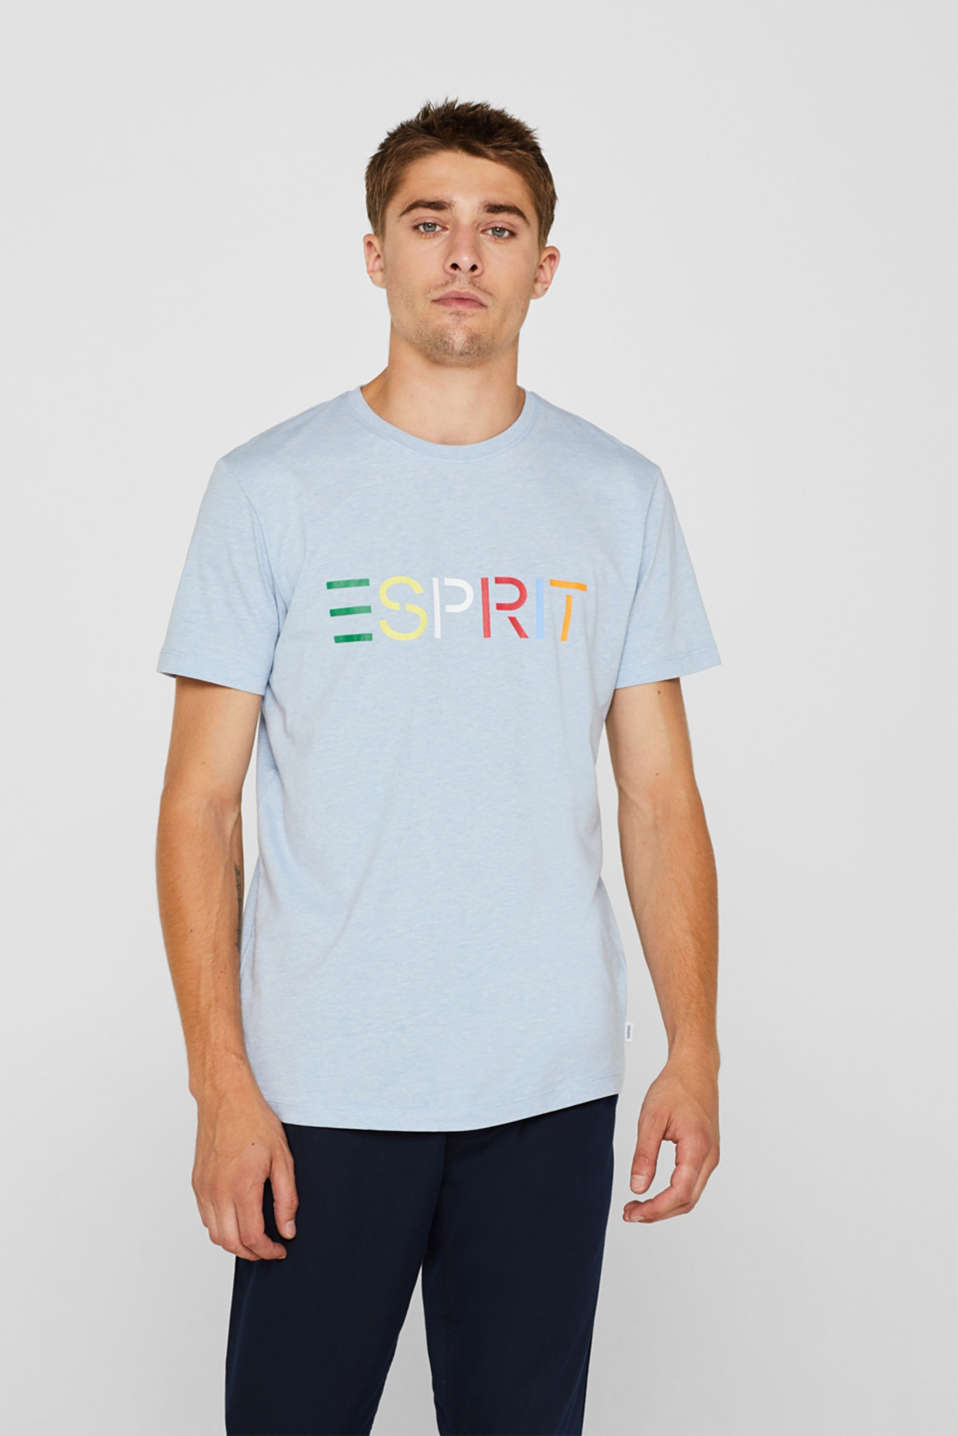 Jersey T-shirt with logo, made of blended cotton, LIGHT BLUE, detail image number 0